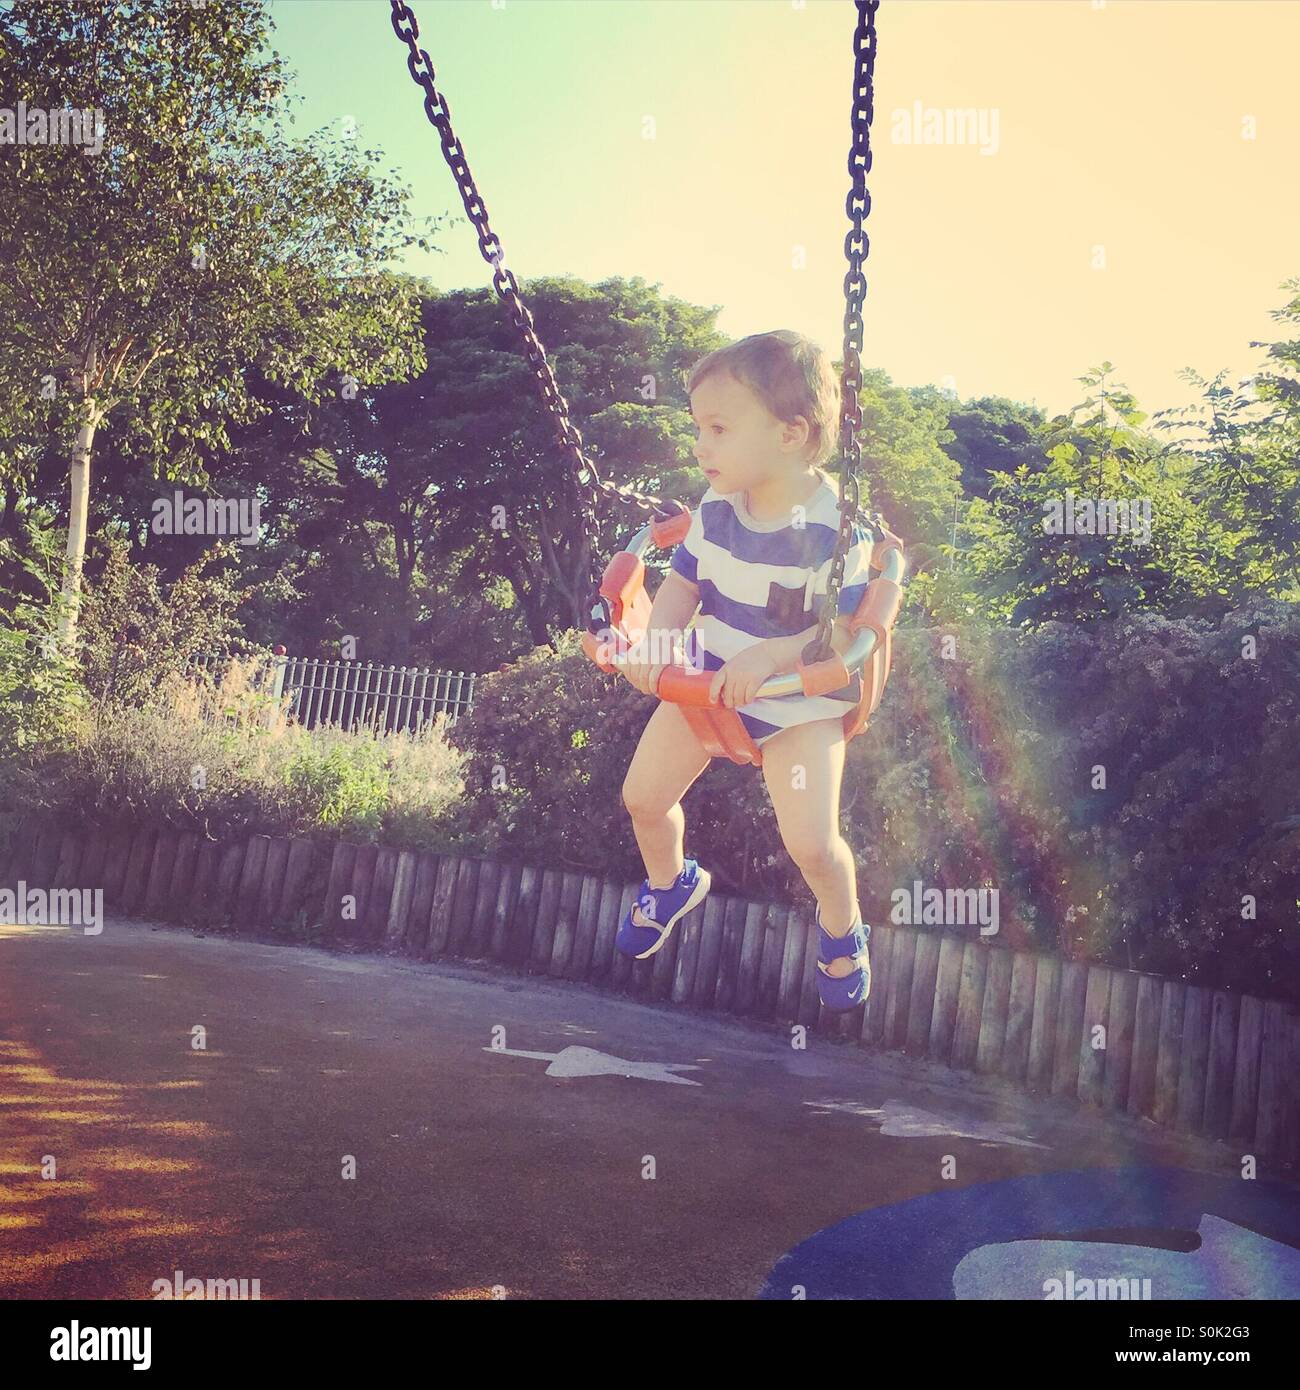 Toddler on swing in park - Stock Image